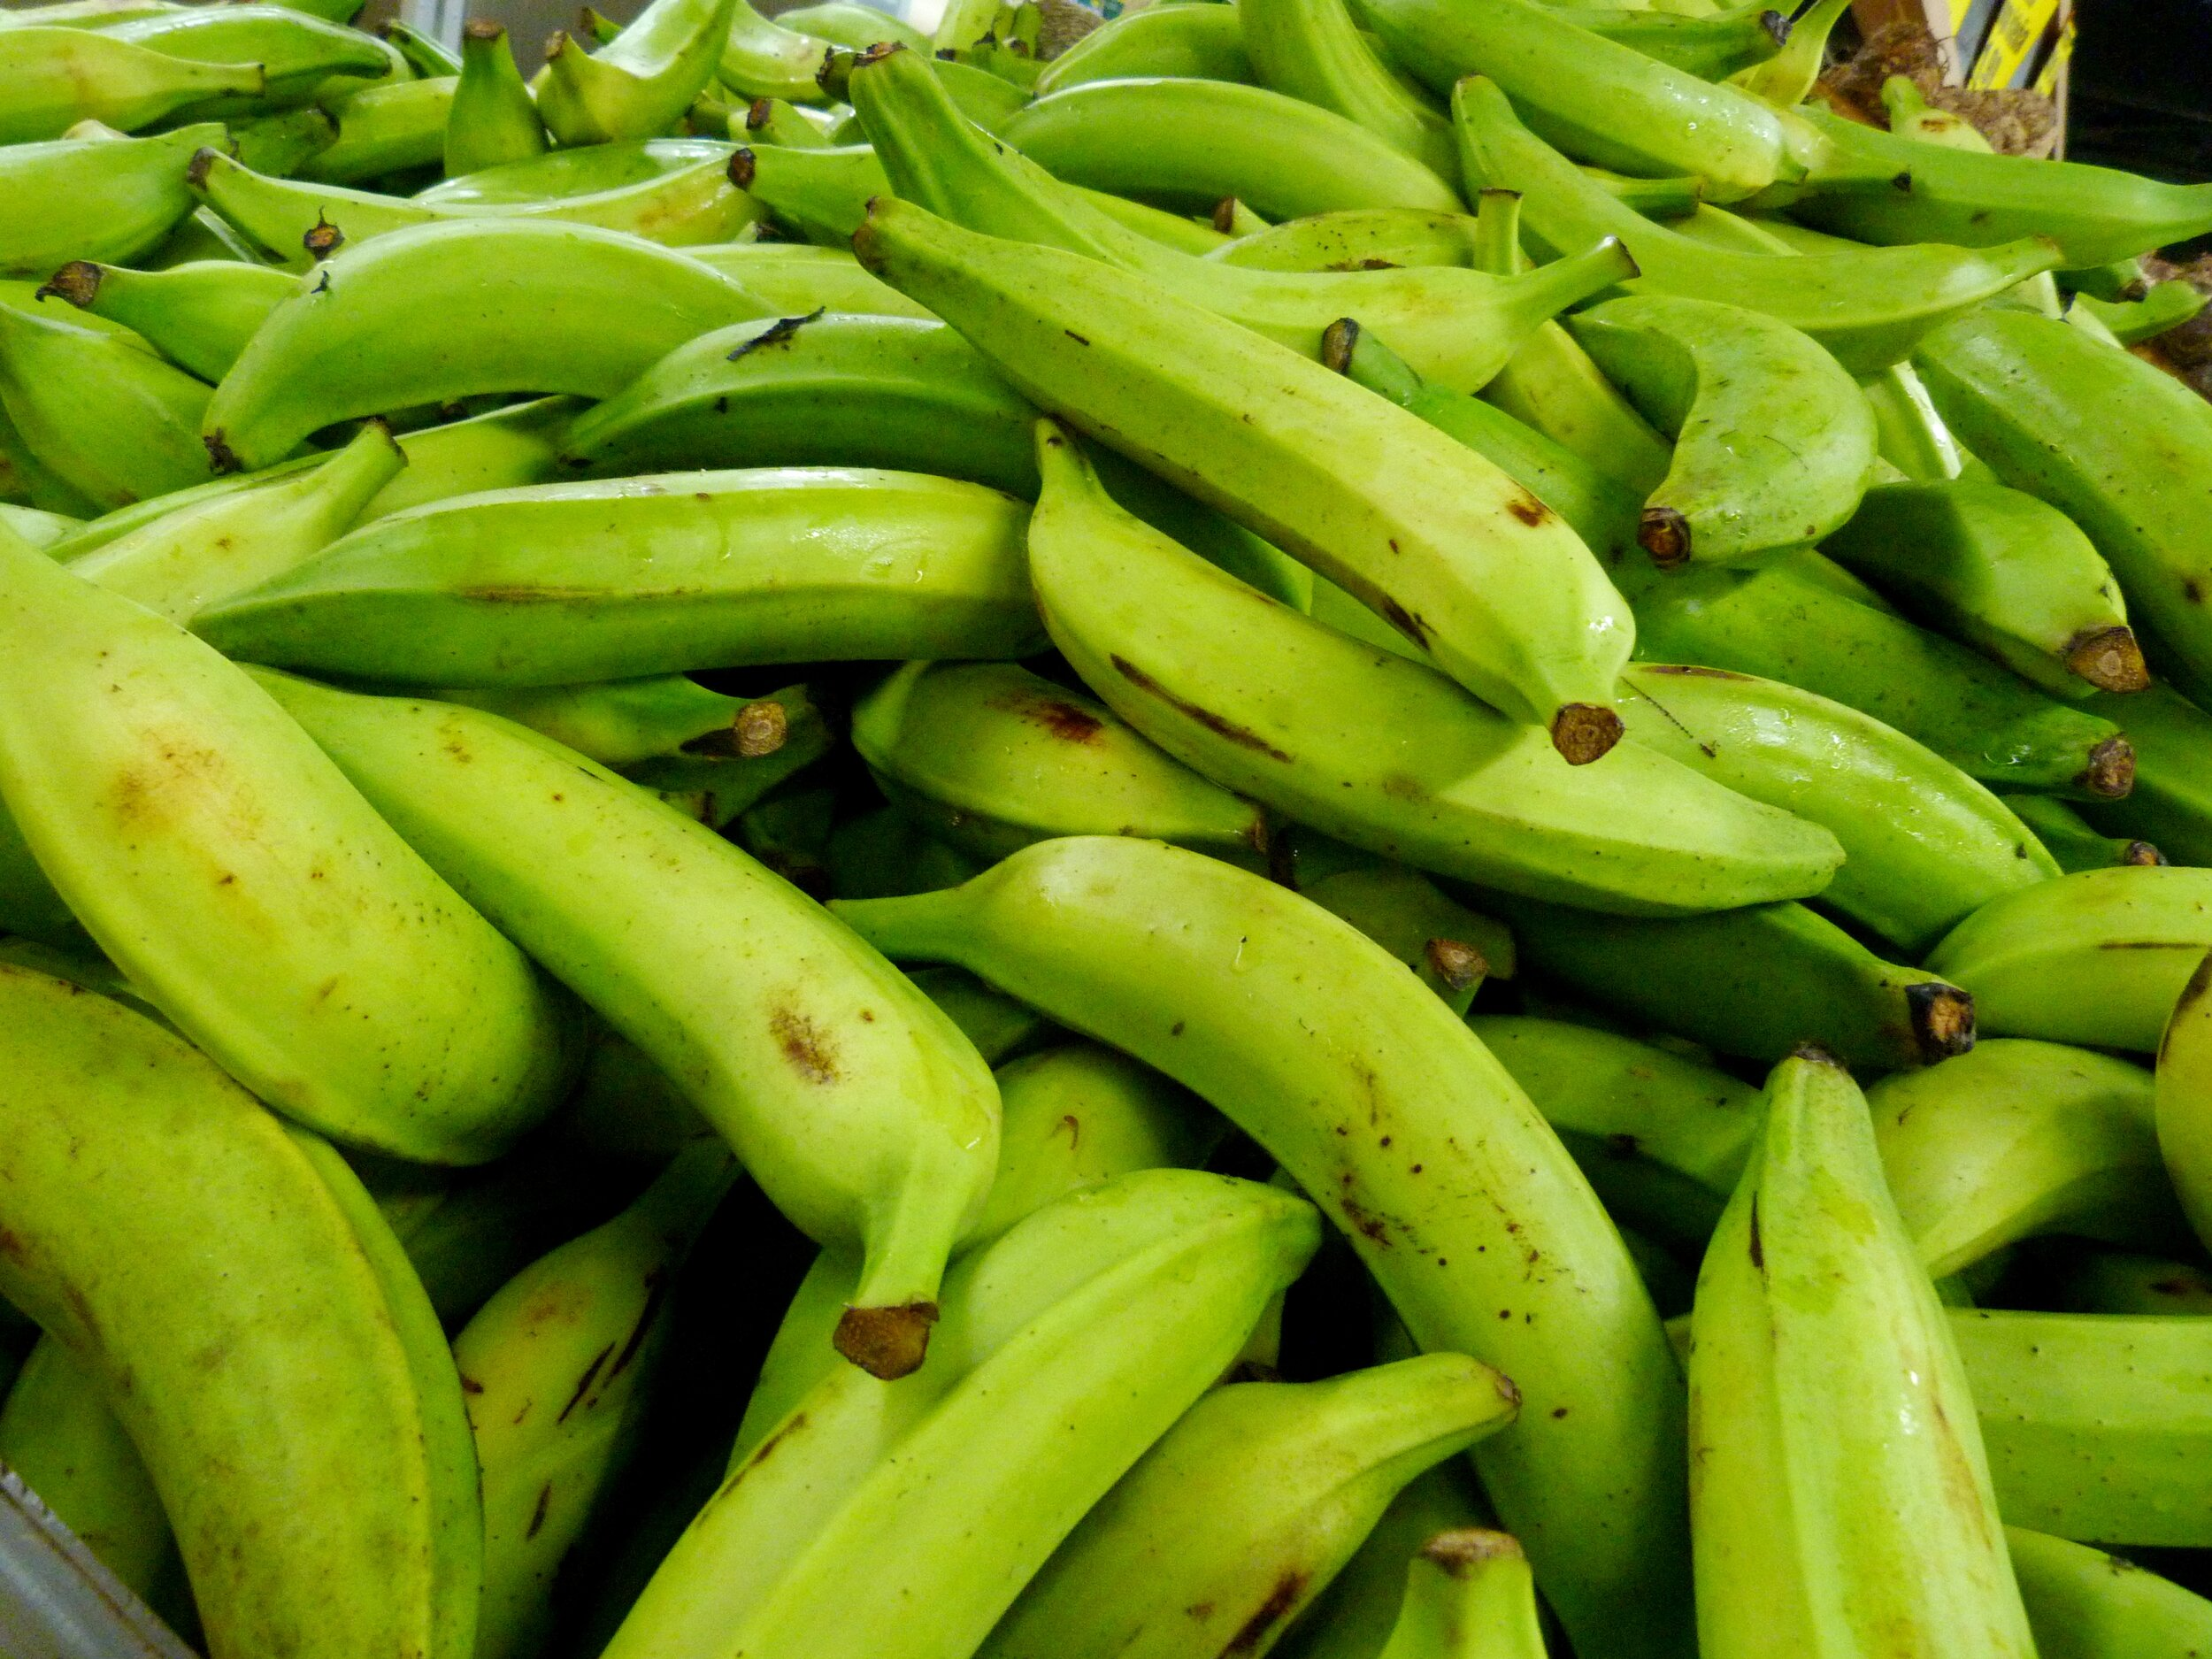 Matoke, green plantain, is the main ingredient in one of Yasmin's favorite dishes.